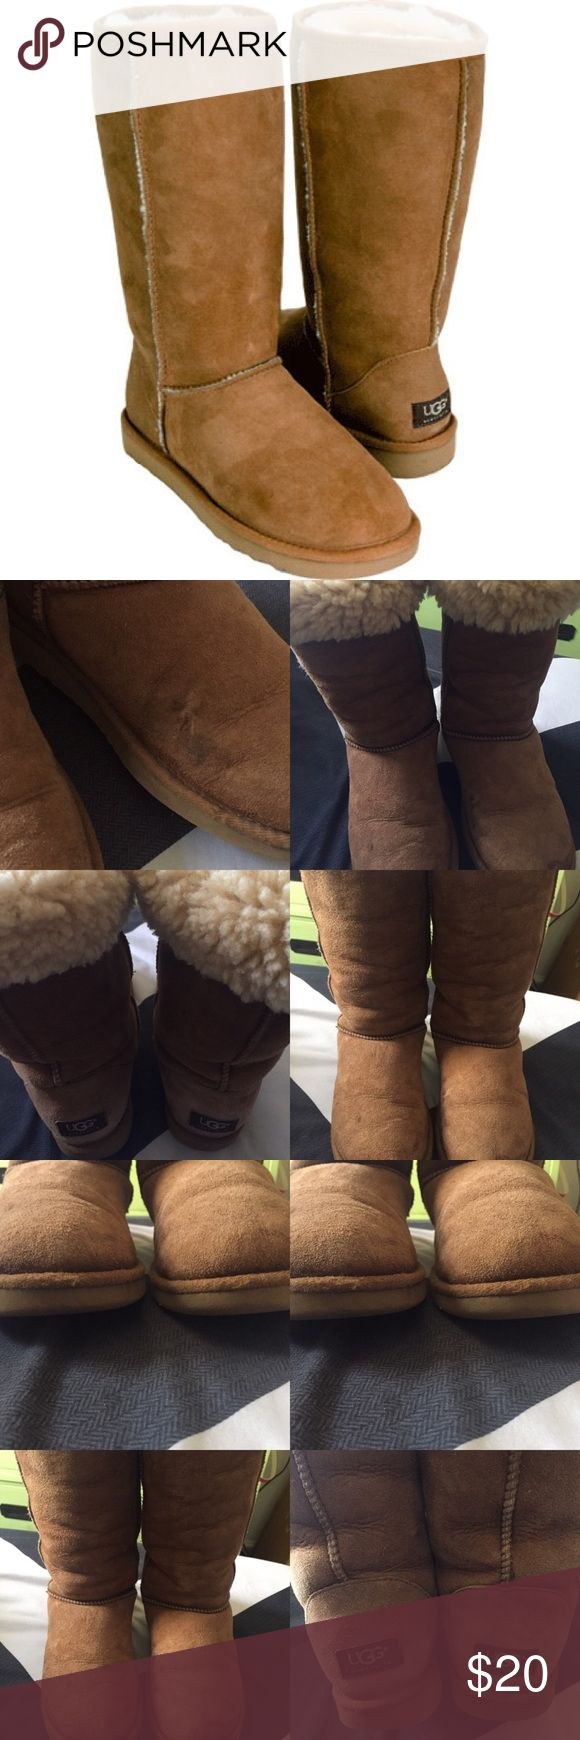 Authentic Uggs! Classic Tall Chestnut Authentic Uggs! Ugg Australia. Genuine sheepskin lining. These have been worn, price reflects, but still a lot of life left. I've had these for years. The bottom sole is the older version and these were purchased before they added the hologram. I do not have the box. More pictures upon request! 💕 These are well loved uggs. Pretty worn out inside. UGG Shoes